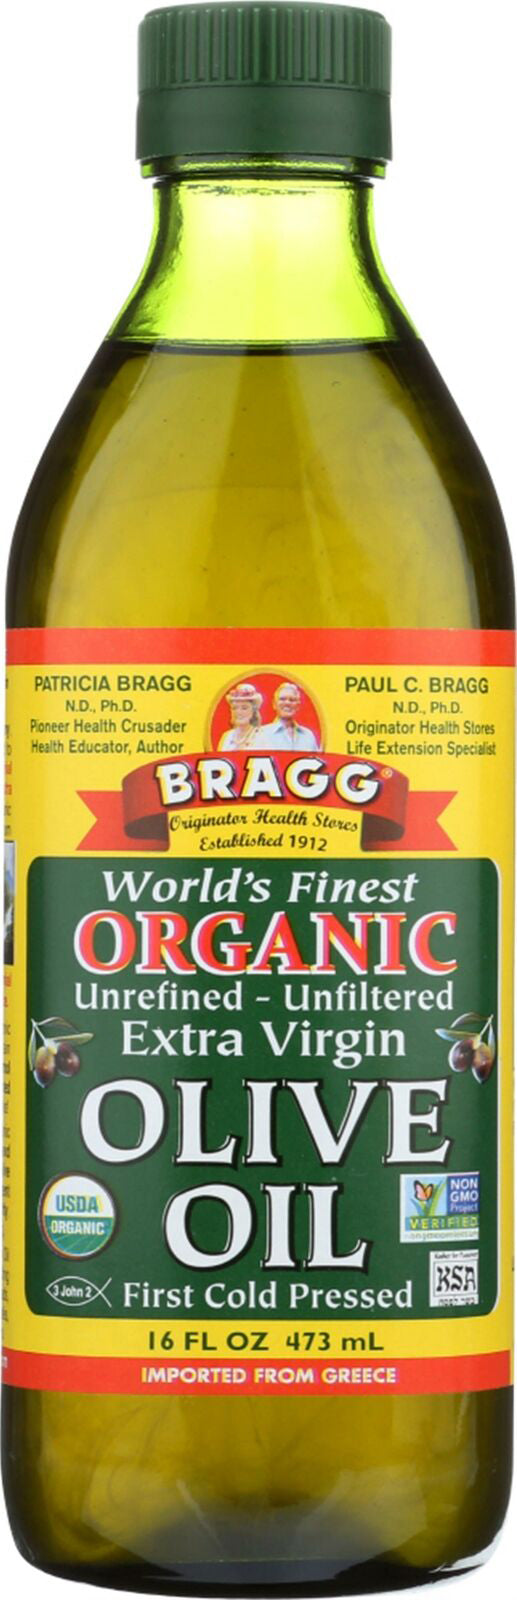 Word's Finest Organic Unrefined/Unfiltered First Cold Pressed Extra Virgin Olive Oil, 16 Fl Oz (473 mL) Liquid